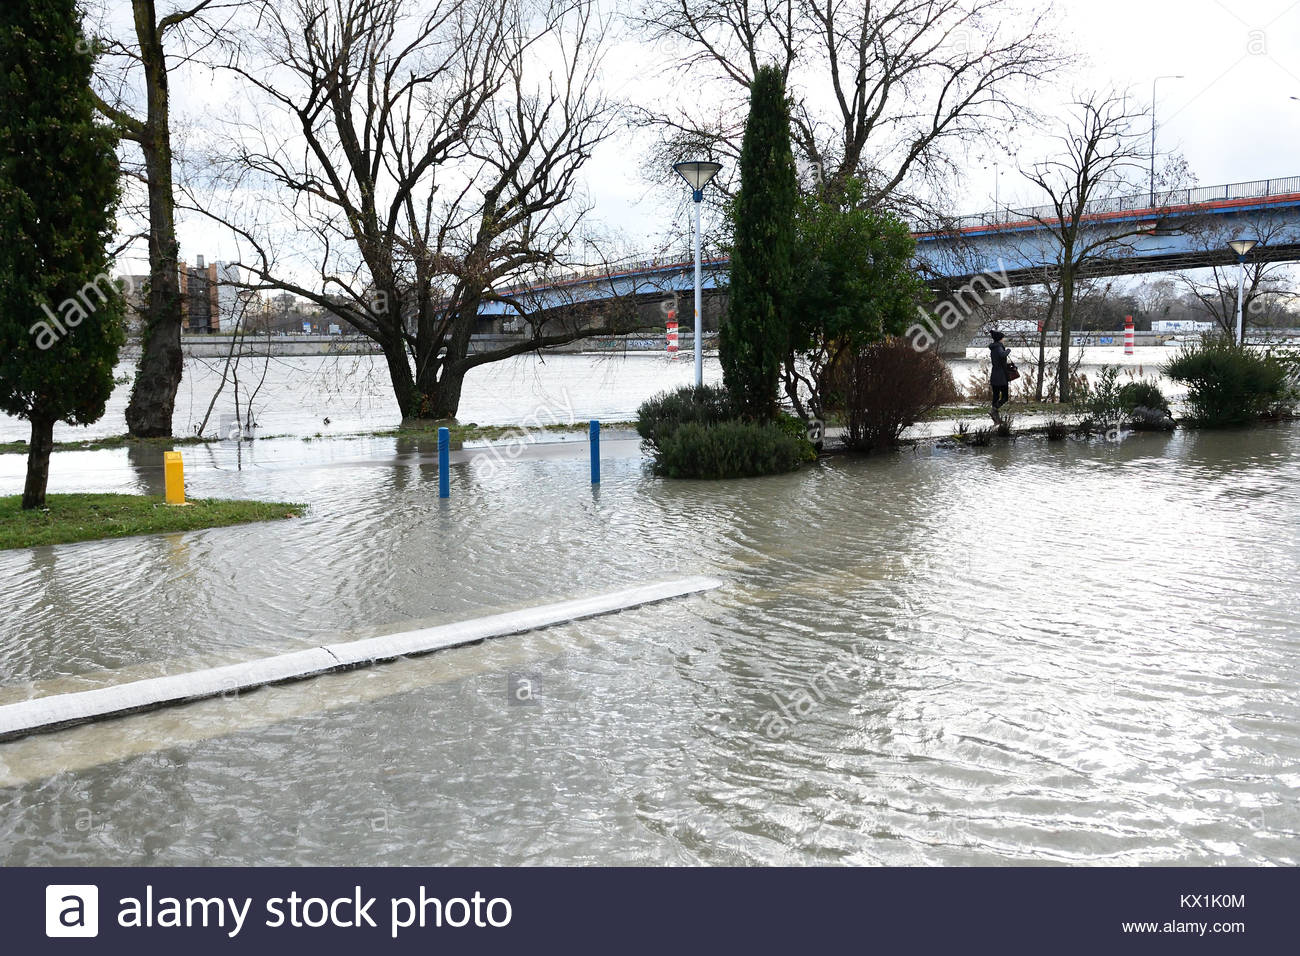 Véronne France 6 January 2018 The photo shows flooding in Ardèche at Voulte-Sur-Rhône in Drome, France - Stock Image